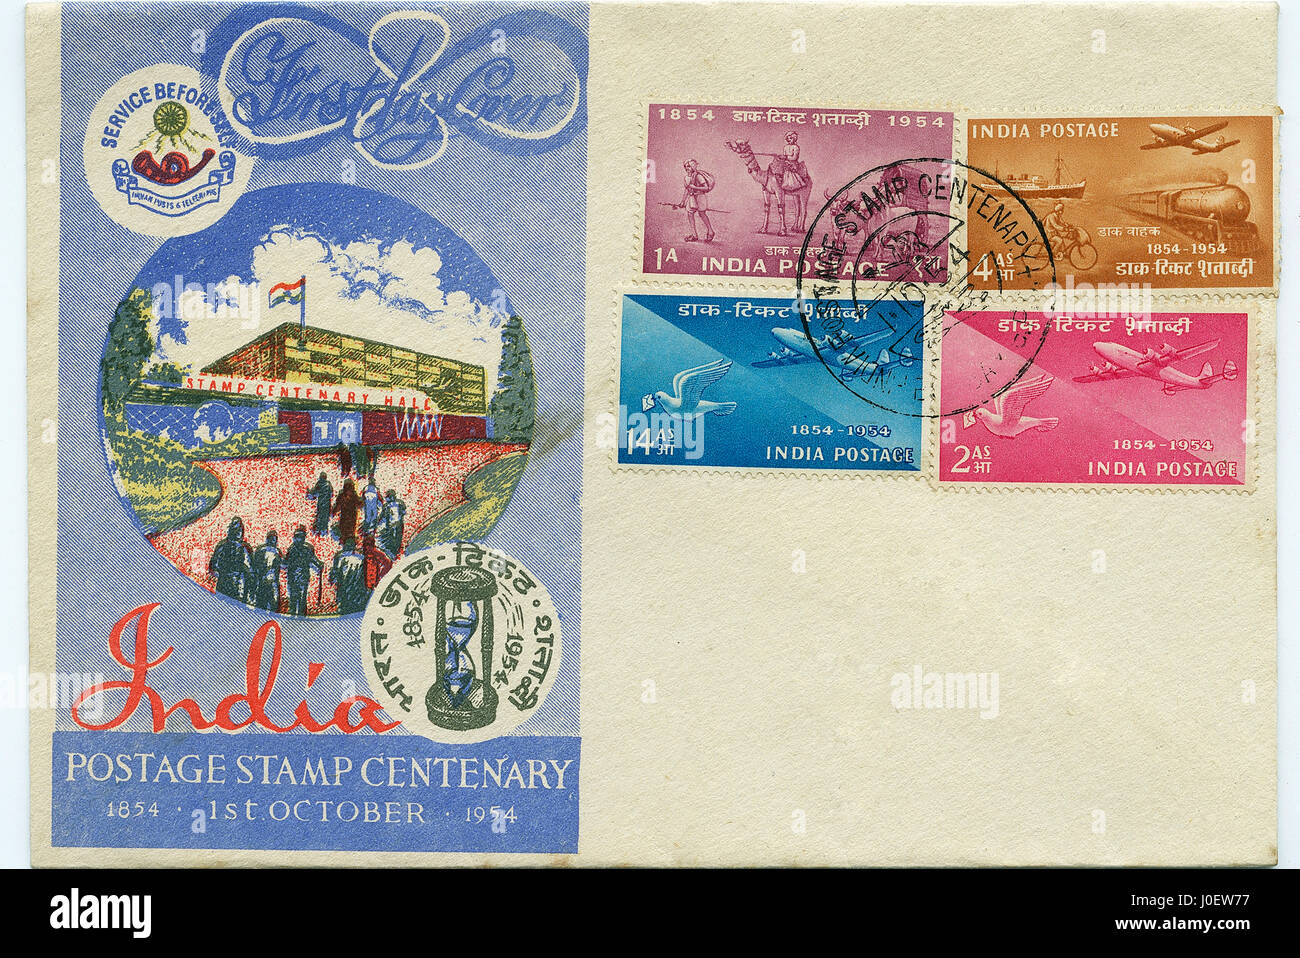 Postage stamp of centenary, india, asia - Stock Image